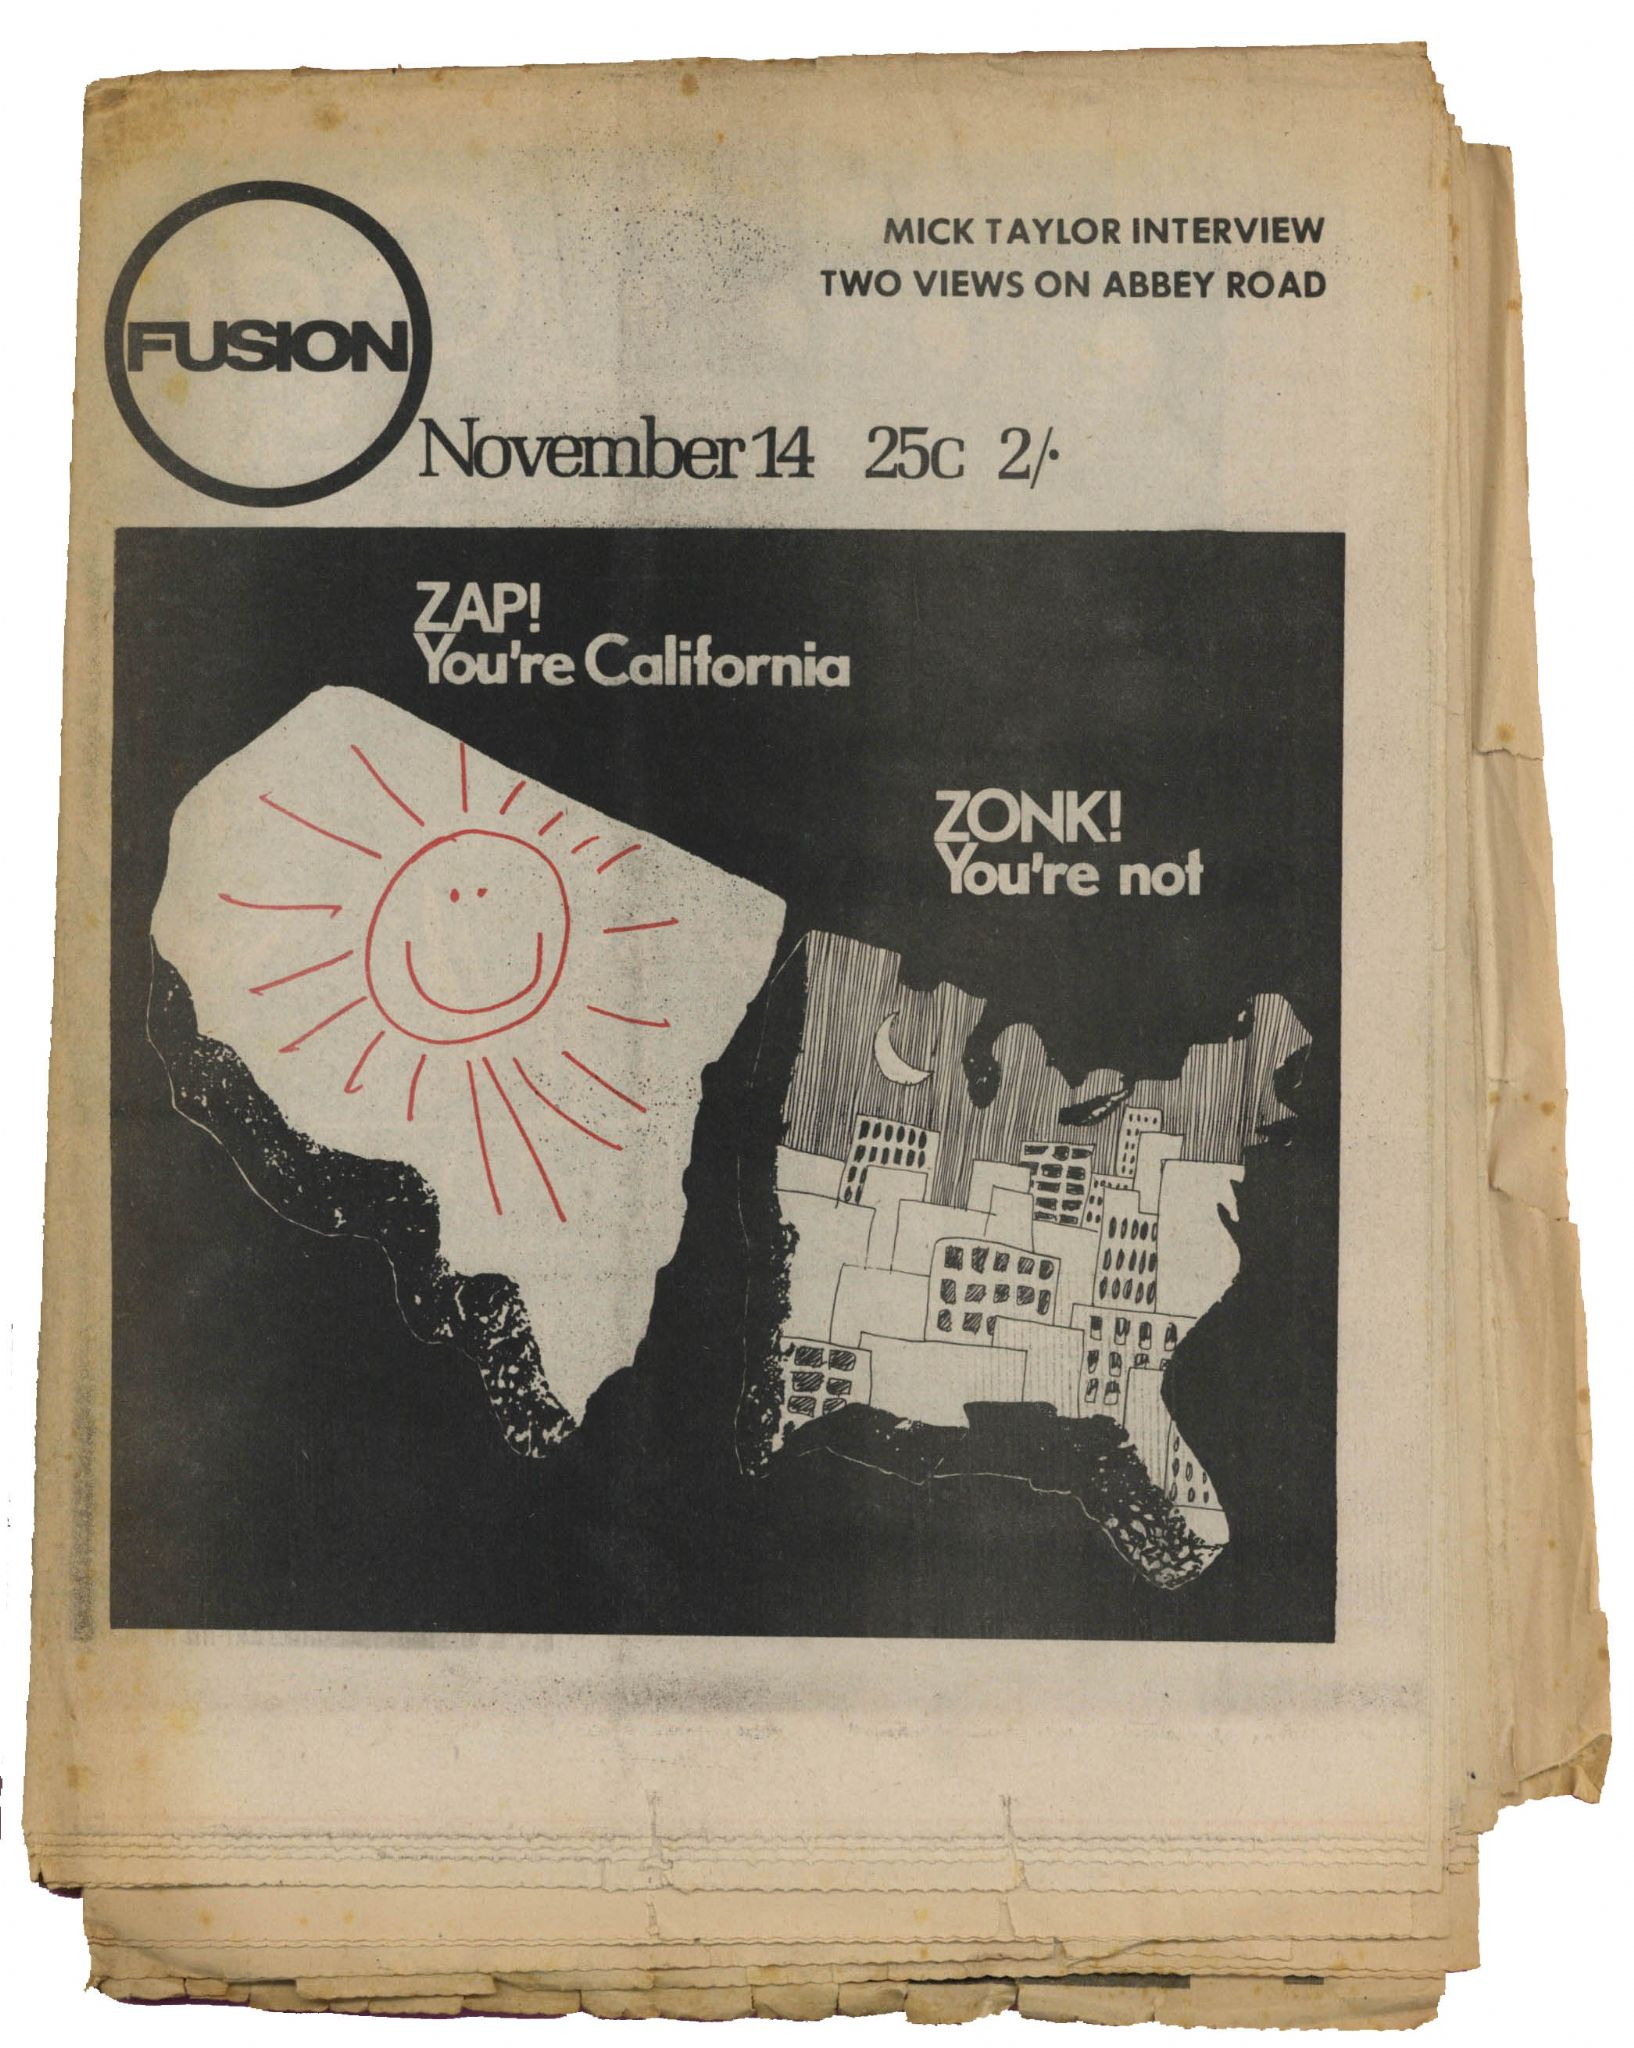 Fusion Magazine No 21 November 1969 Rolling Stones Mick Taylor Interview